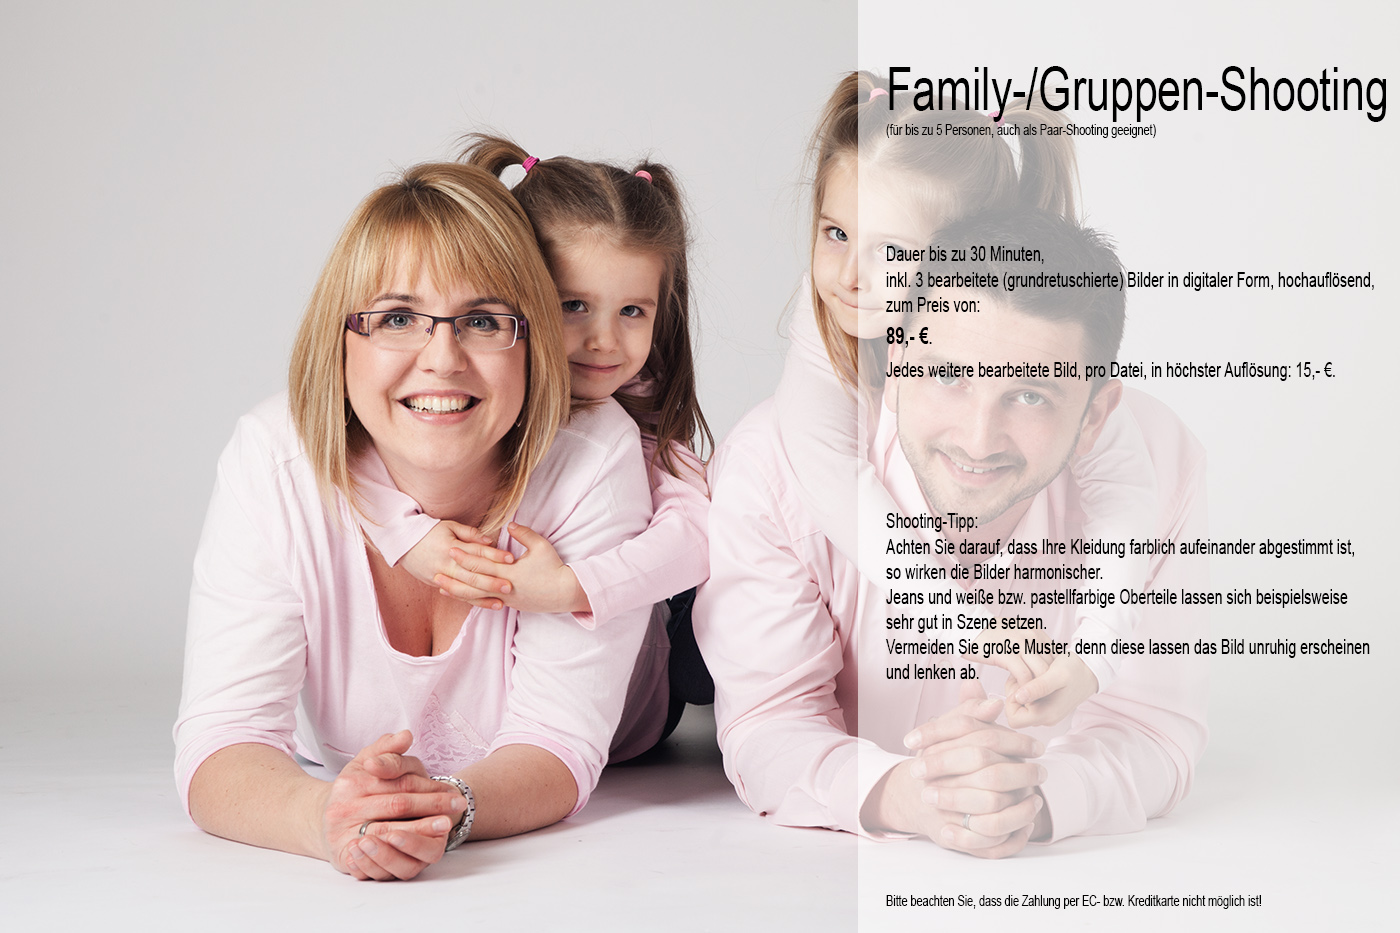 Family-Gruppen-Shooting-Angebot